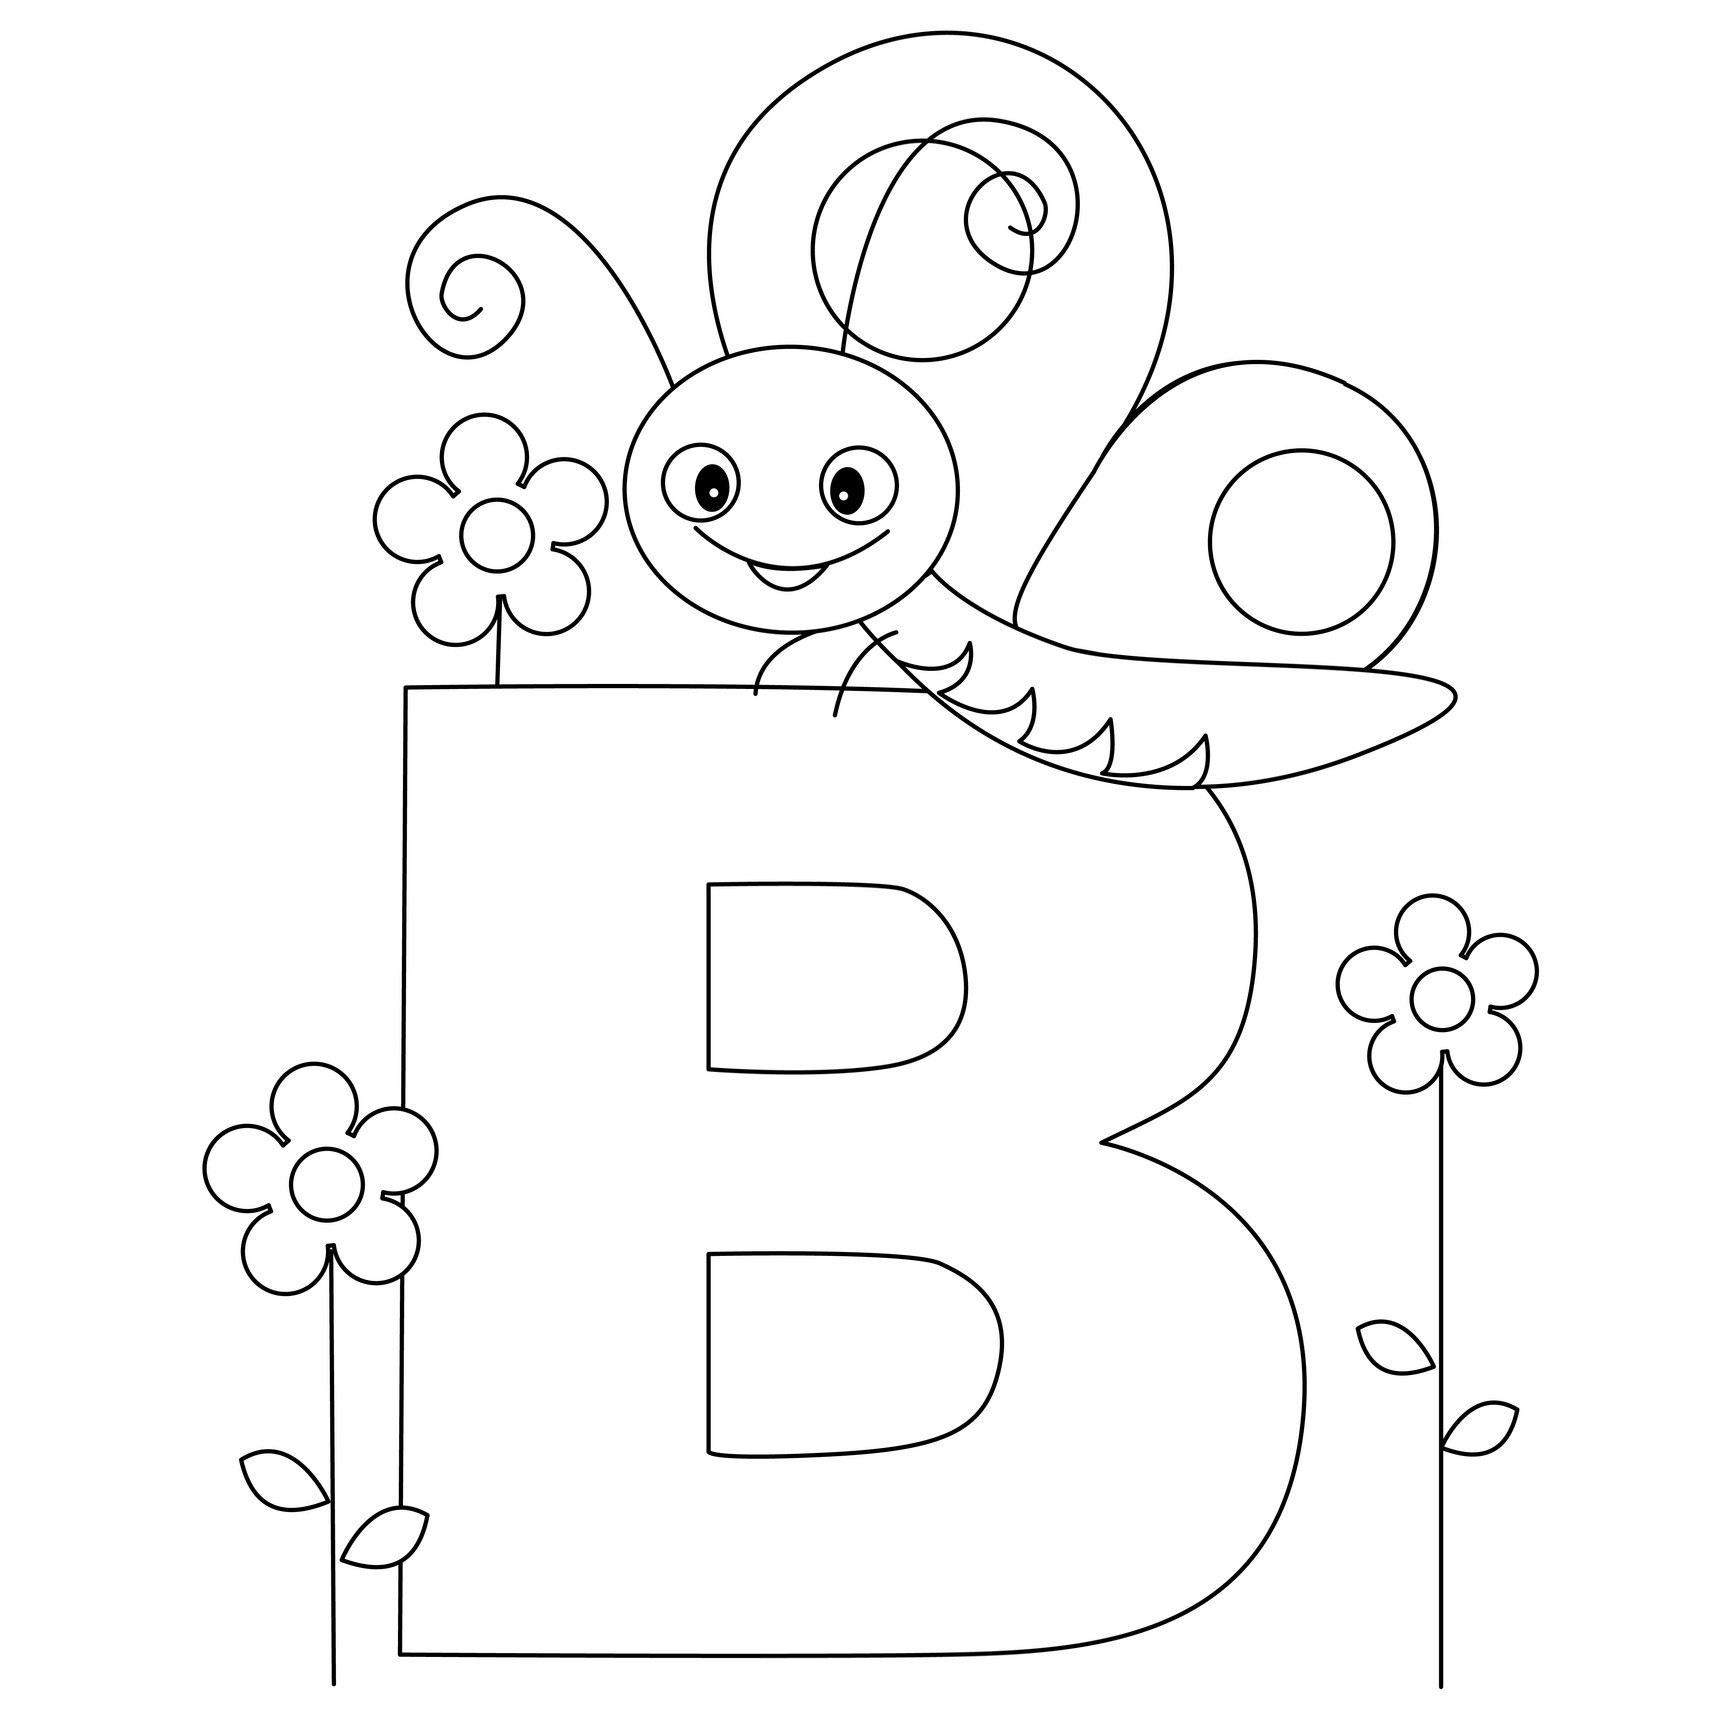 letter a coloring pages free - photo#6